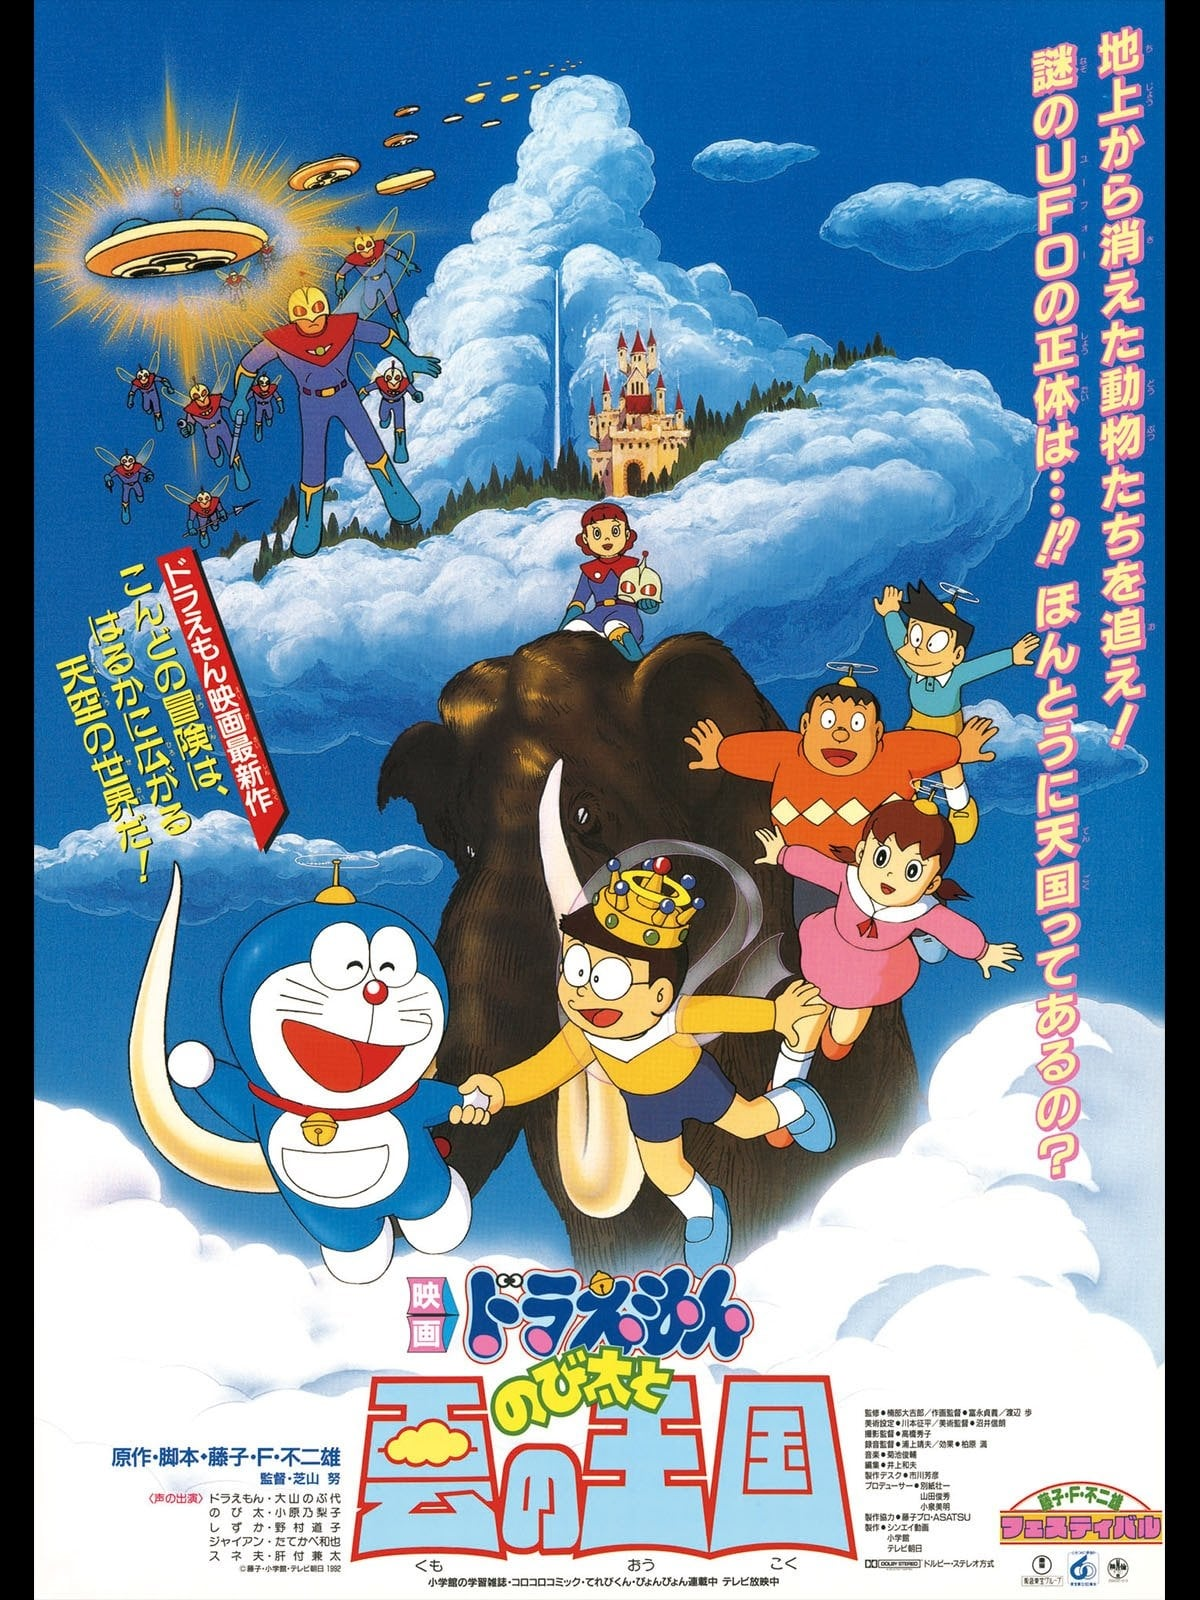 Doraemon: Nobita and the Kingdom of Clouds (1992)